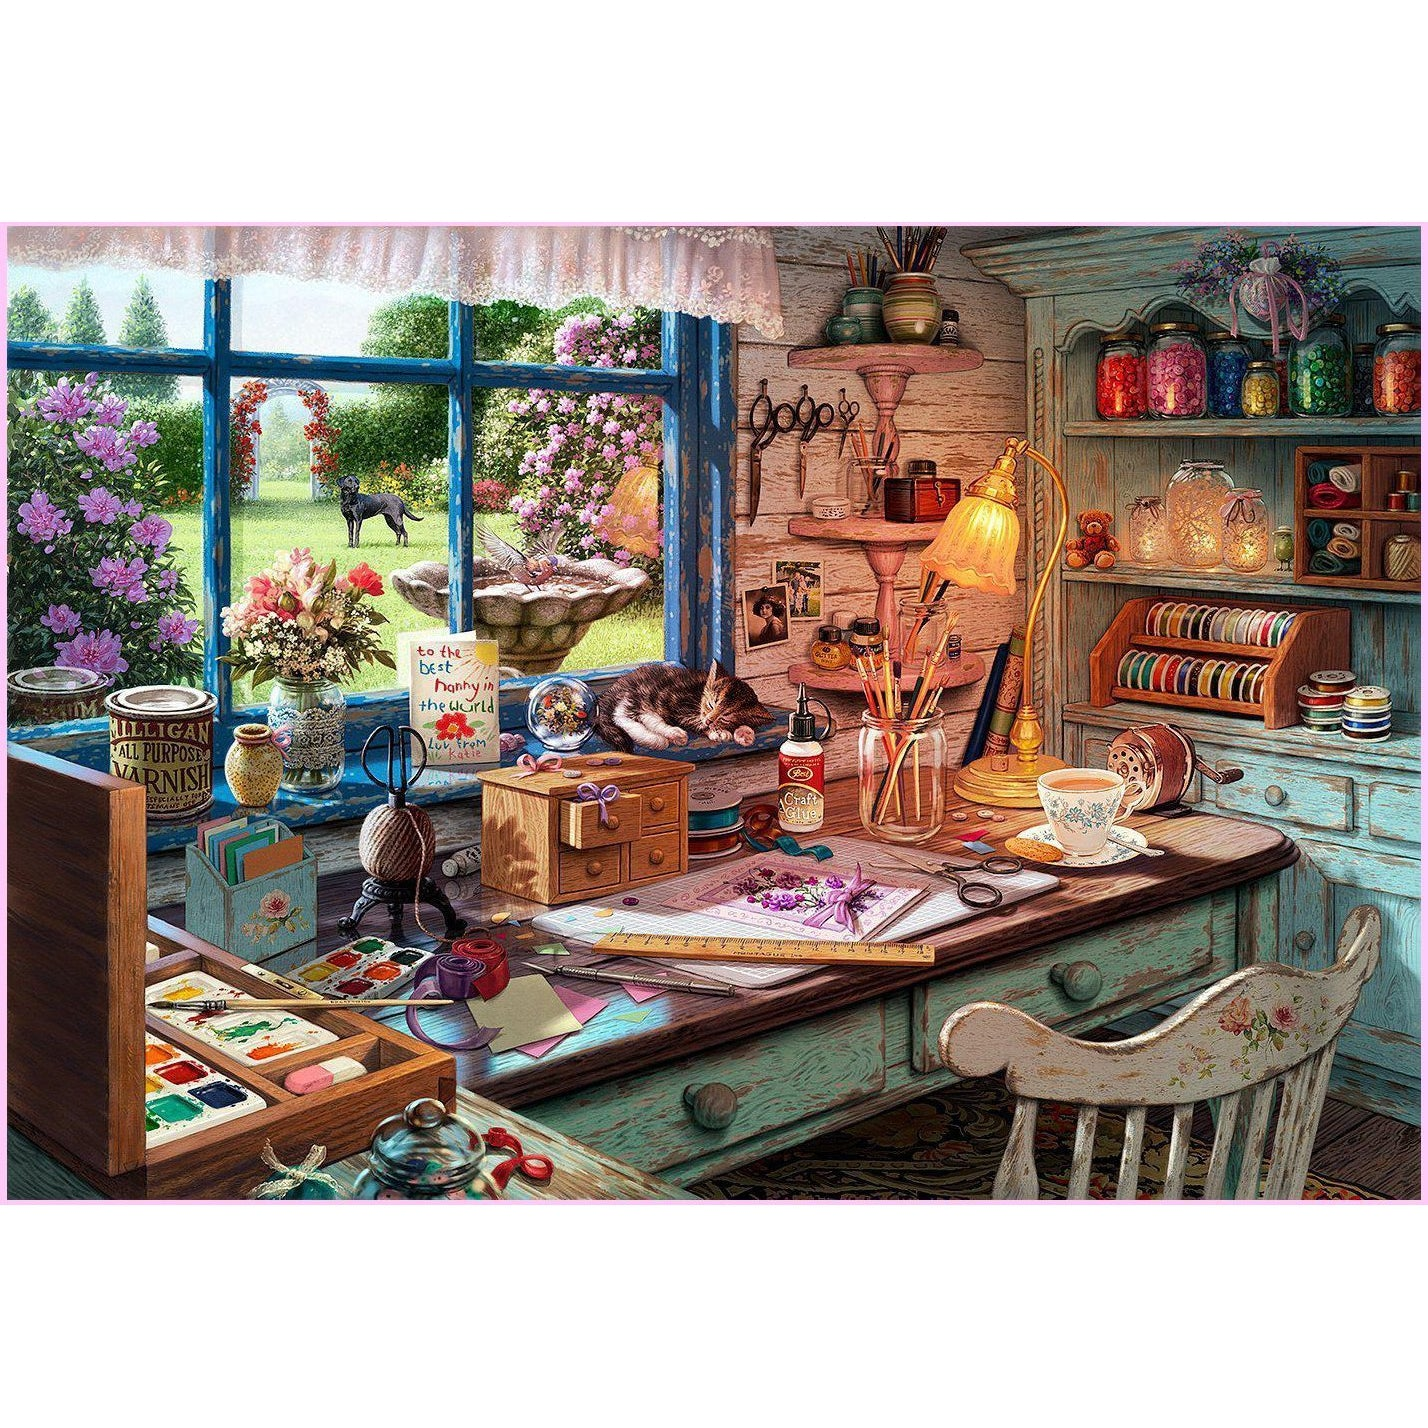 Grandma's Craft Shed-Diamond Painting Kit USPS-30x45cm (12x18 in)-Square-Heartful Diamonds